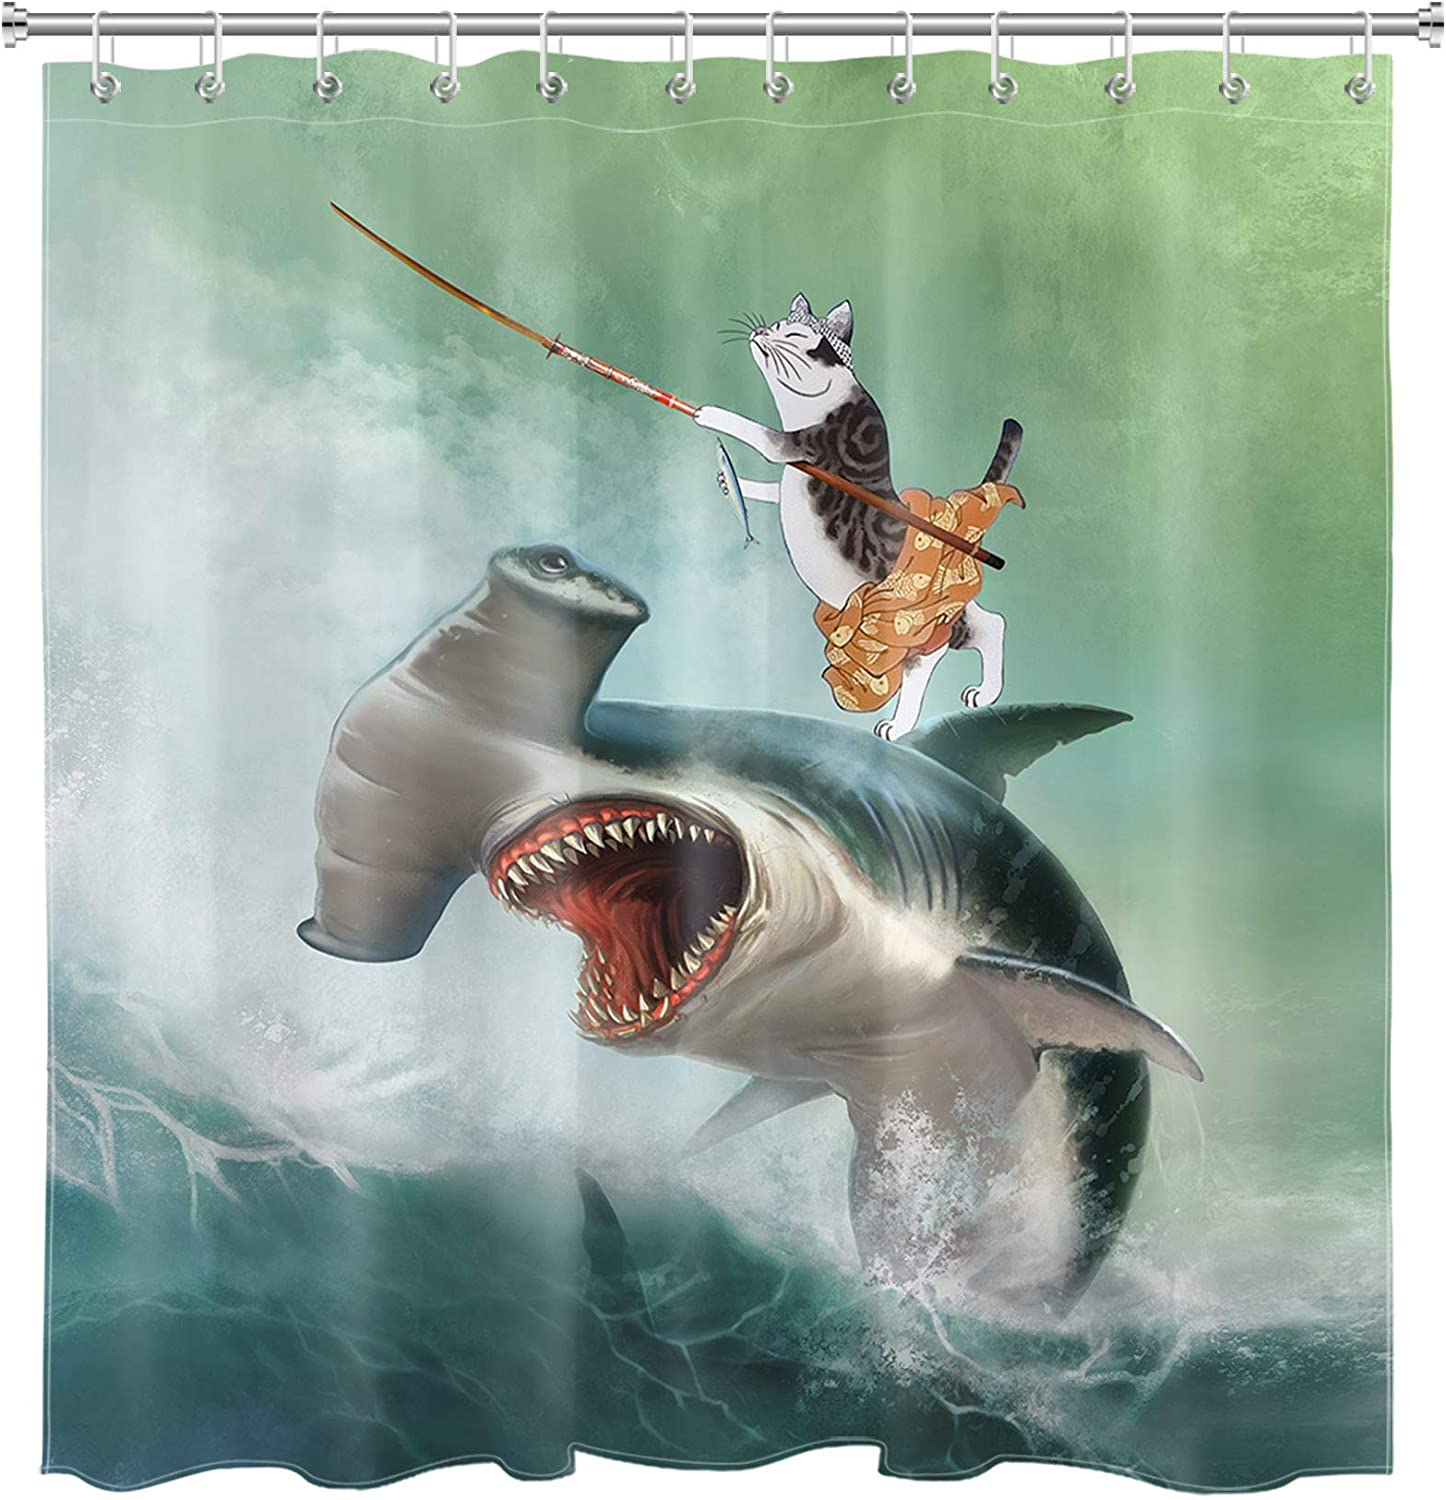 LB Funny Cat Shower Curtain Set Hippie Cat Riding Weird Shark Fishing on Ocean Wave Shower Curtains for Bathroom Decoration with Hooks 72x72 inch Waterproof Polyester Fabric